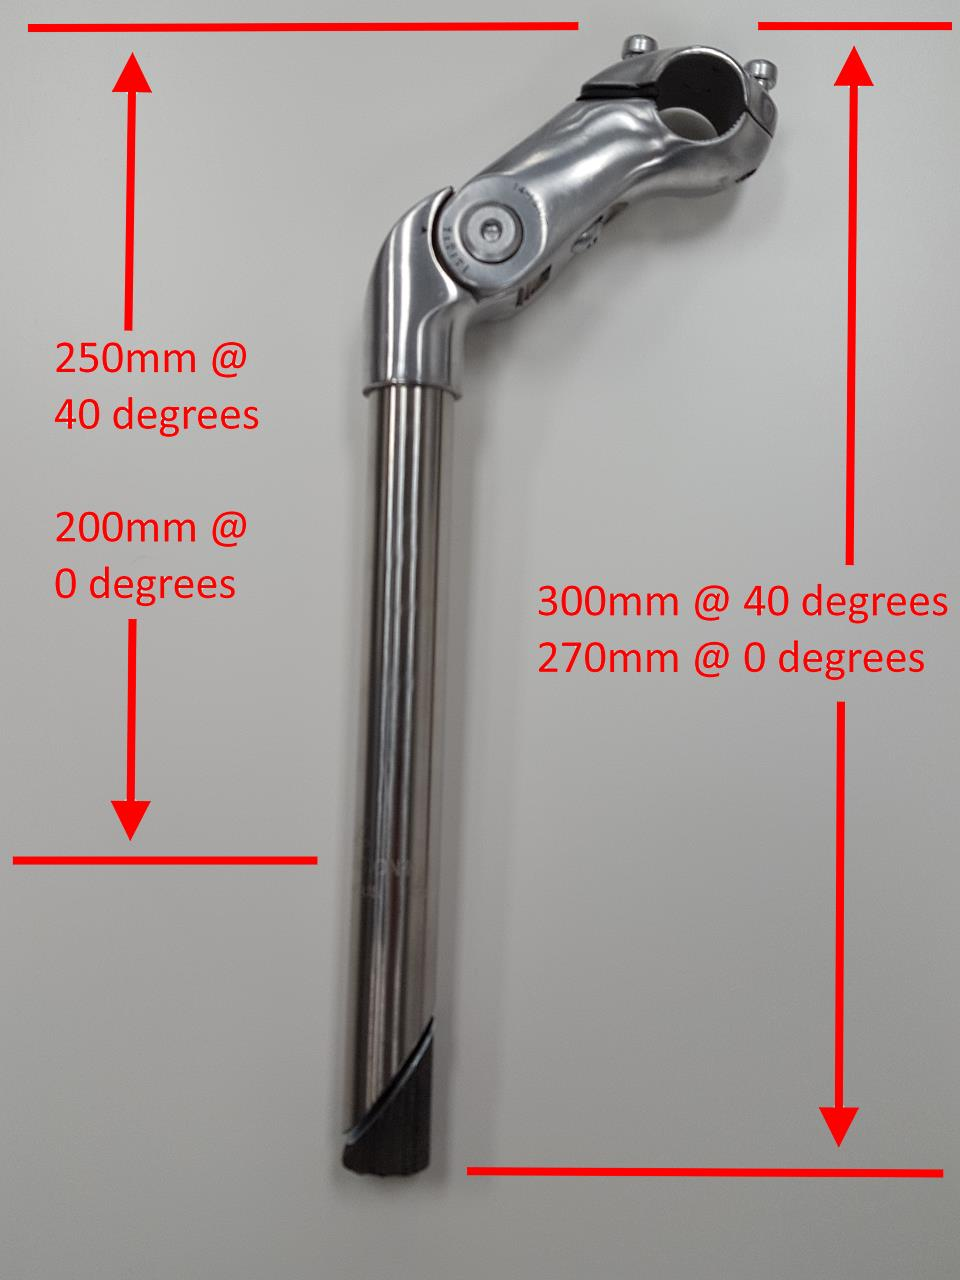 Dutch Stainless Steel Stem 250mm Adjustable